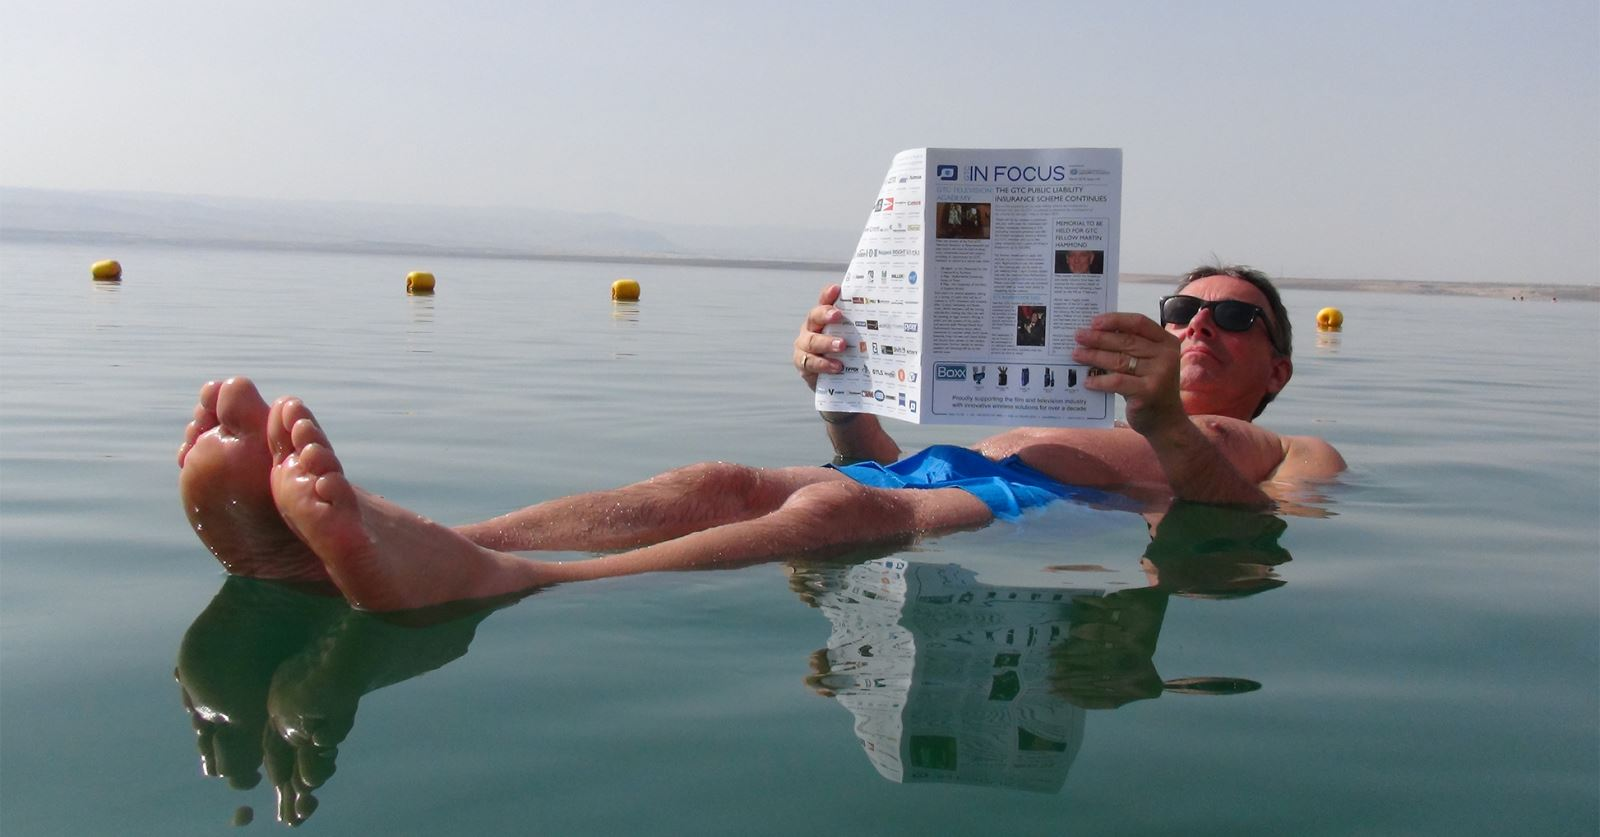 GTC Chair Graham Maunder catches up with some GTC reading in the Dead Sea on a recent filming trip